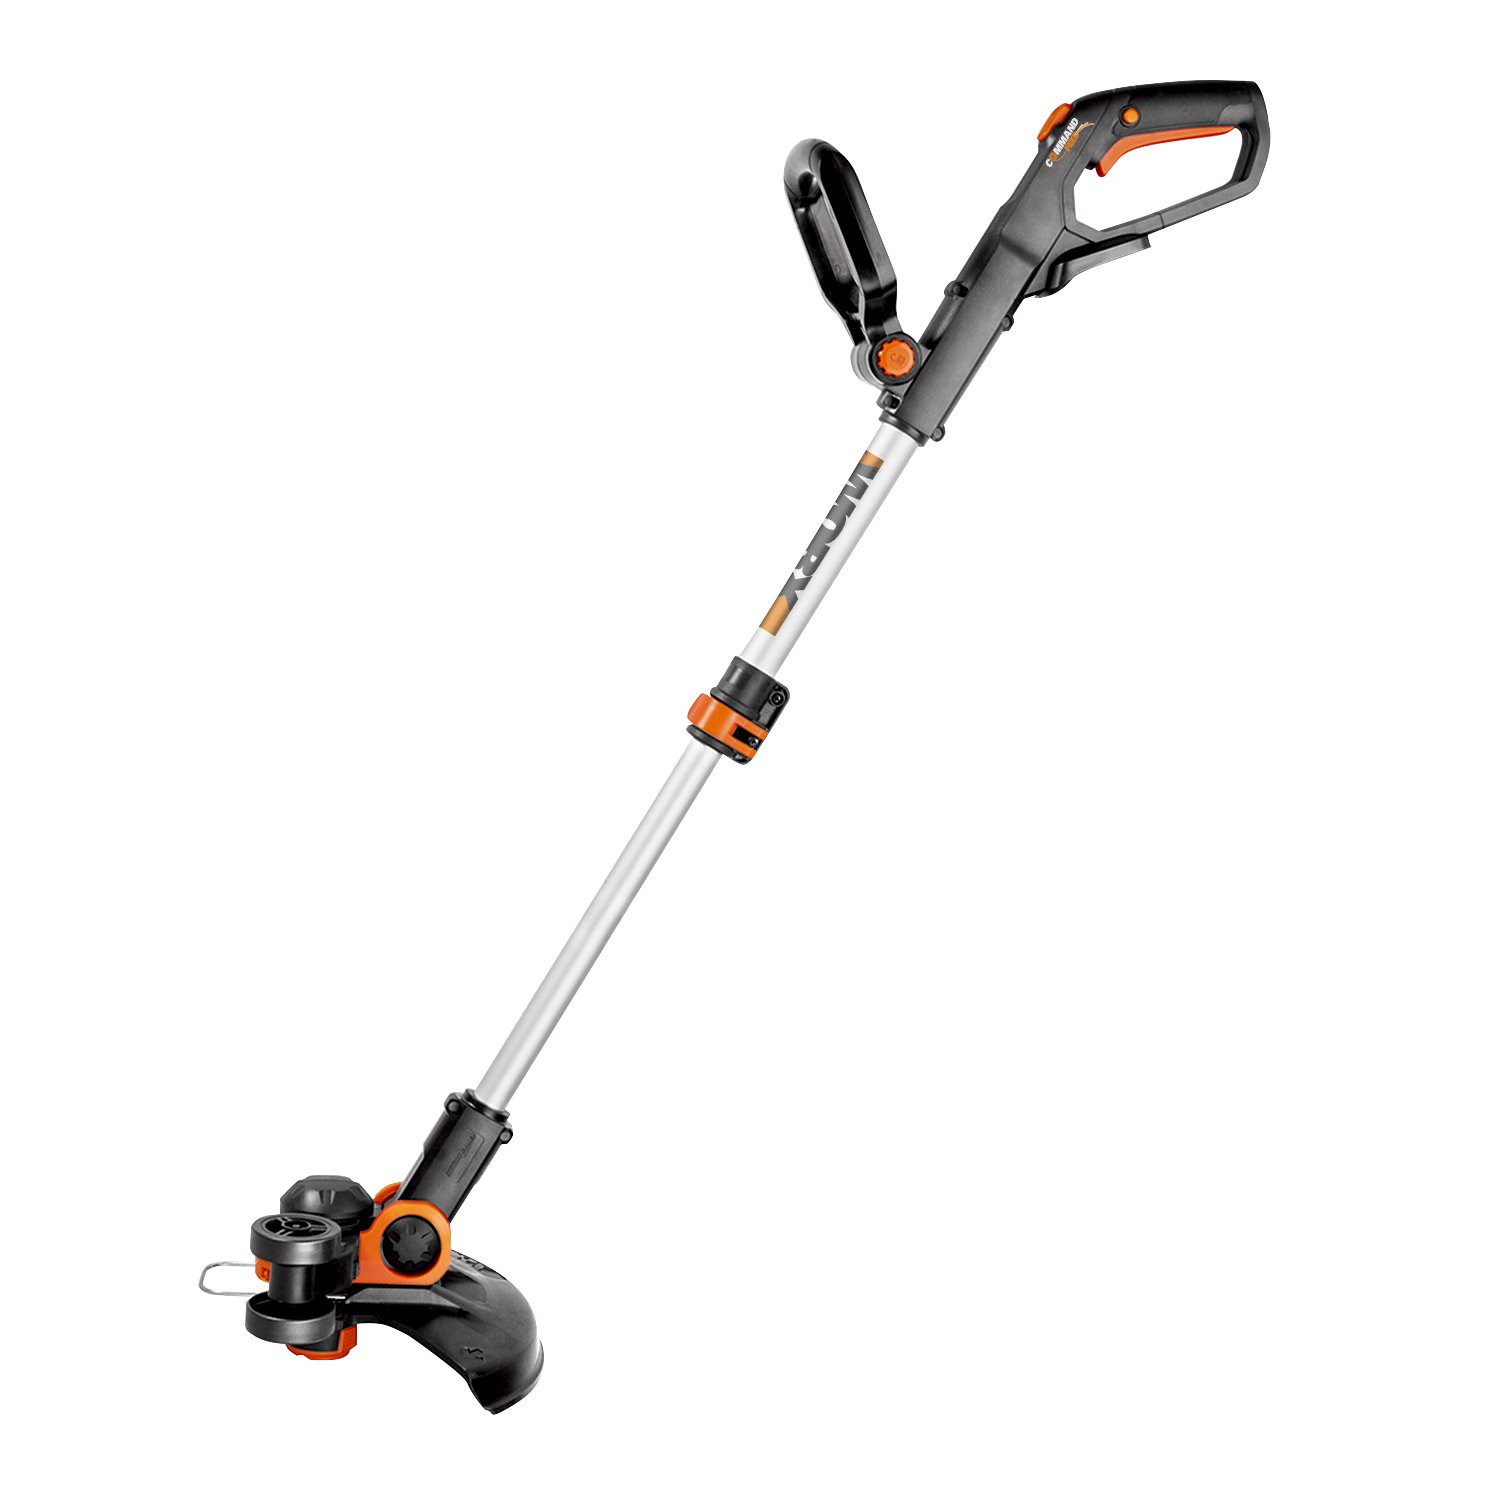 "Worx WG163 GT 3.0 20V Cordless Grass Trimmer/Edger with Command Feed, 12"", 2 Batteries and Charger Included"